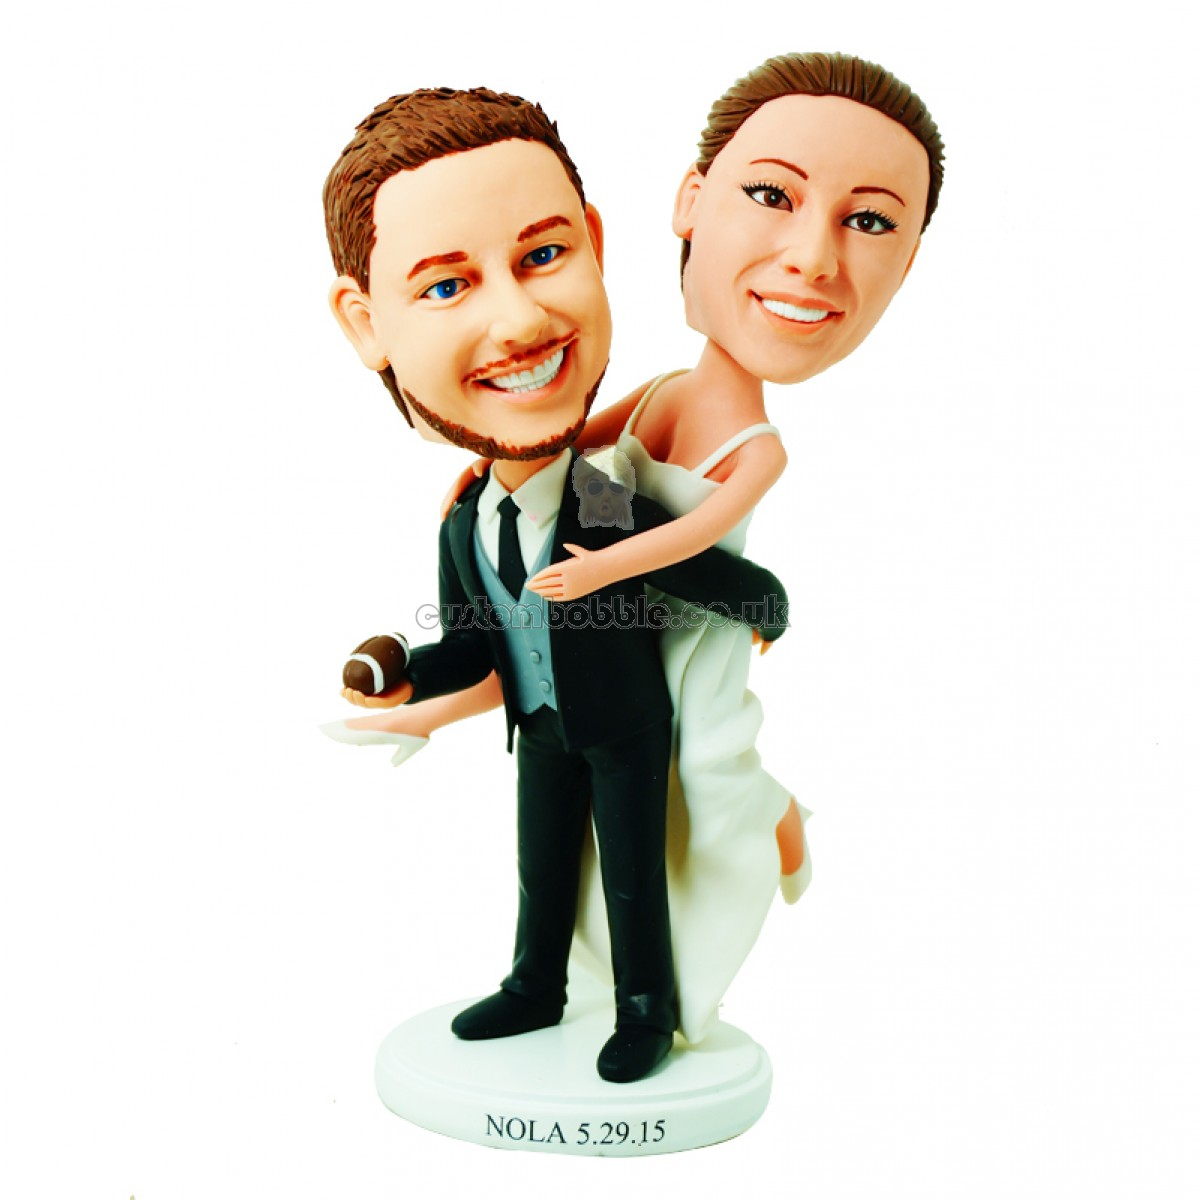 customised wedding cake topper football fan bride jump on